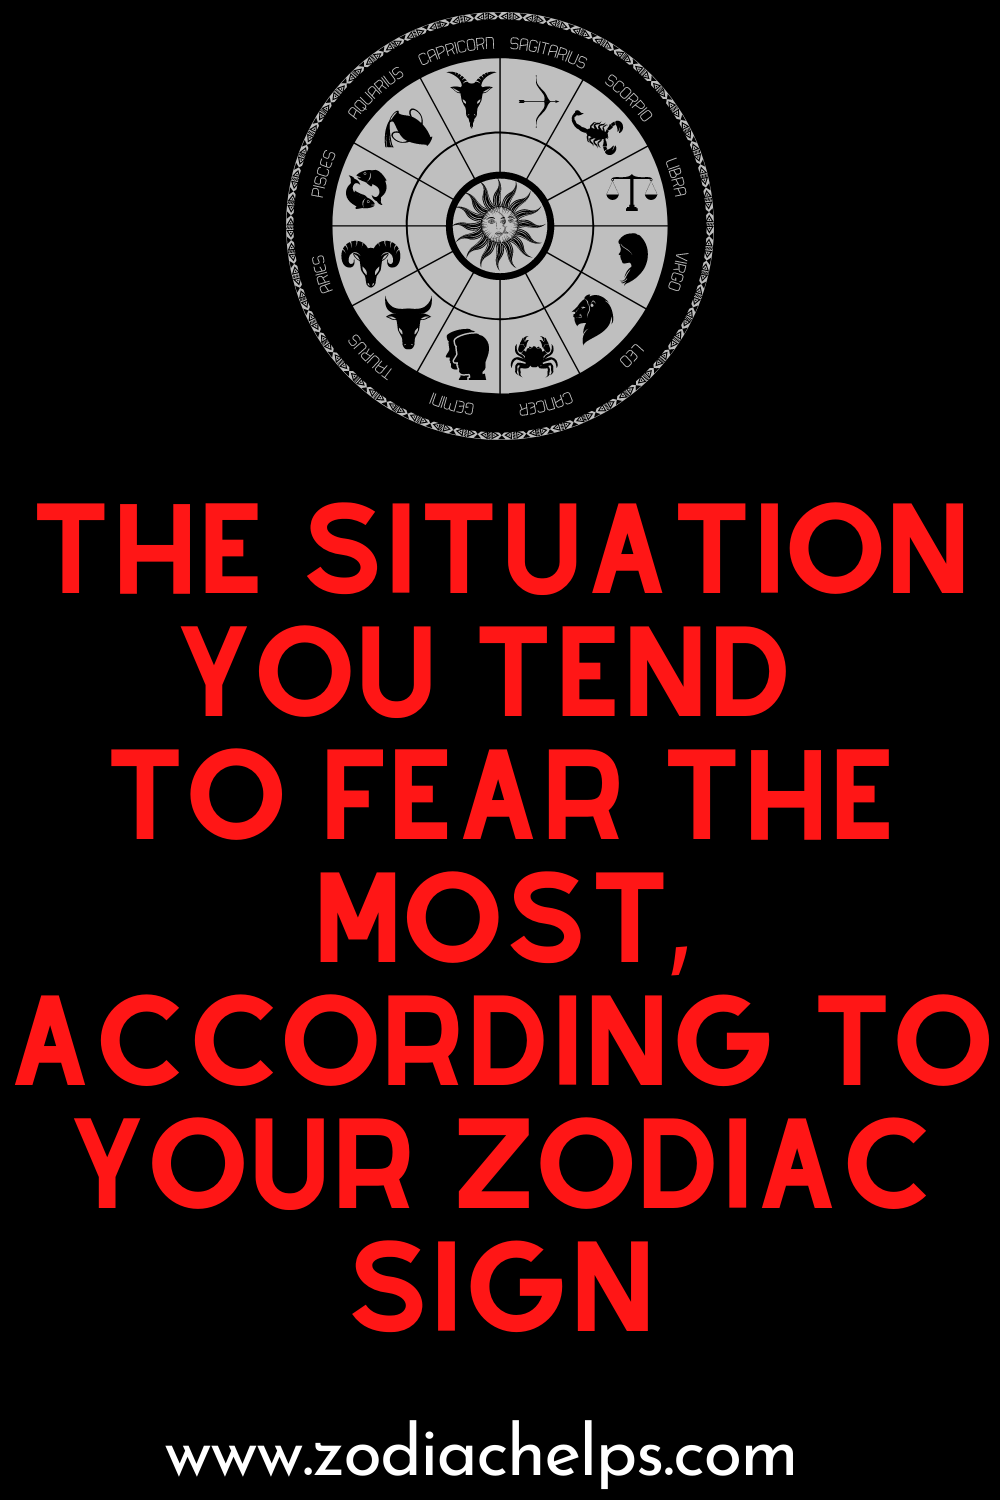 The Situation You Tend to Fear the Most, According to Your Zodiac Sign